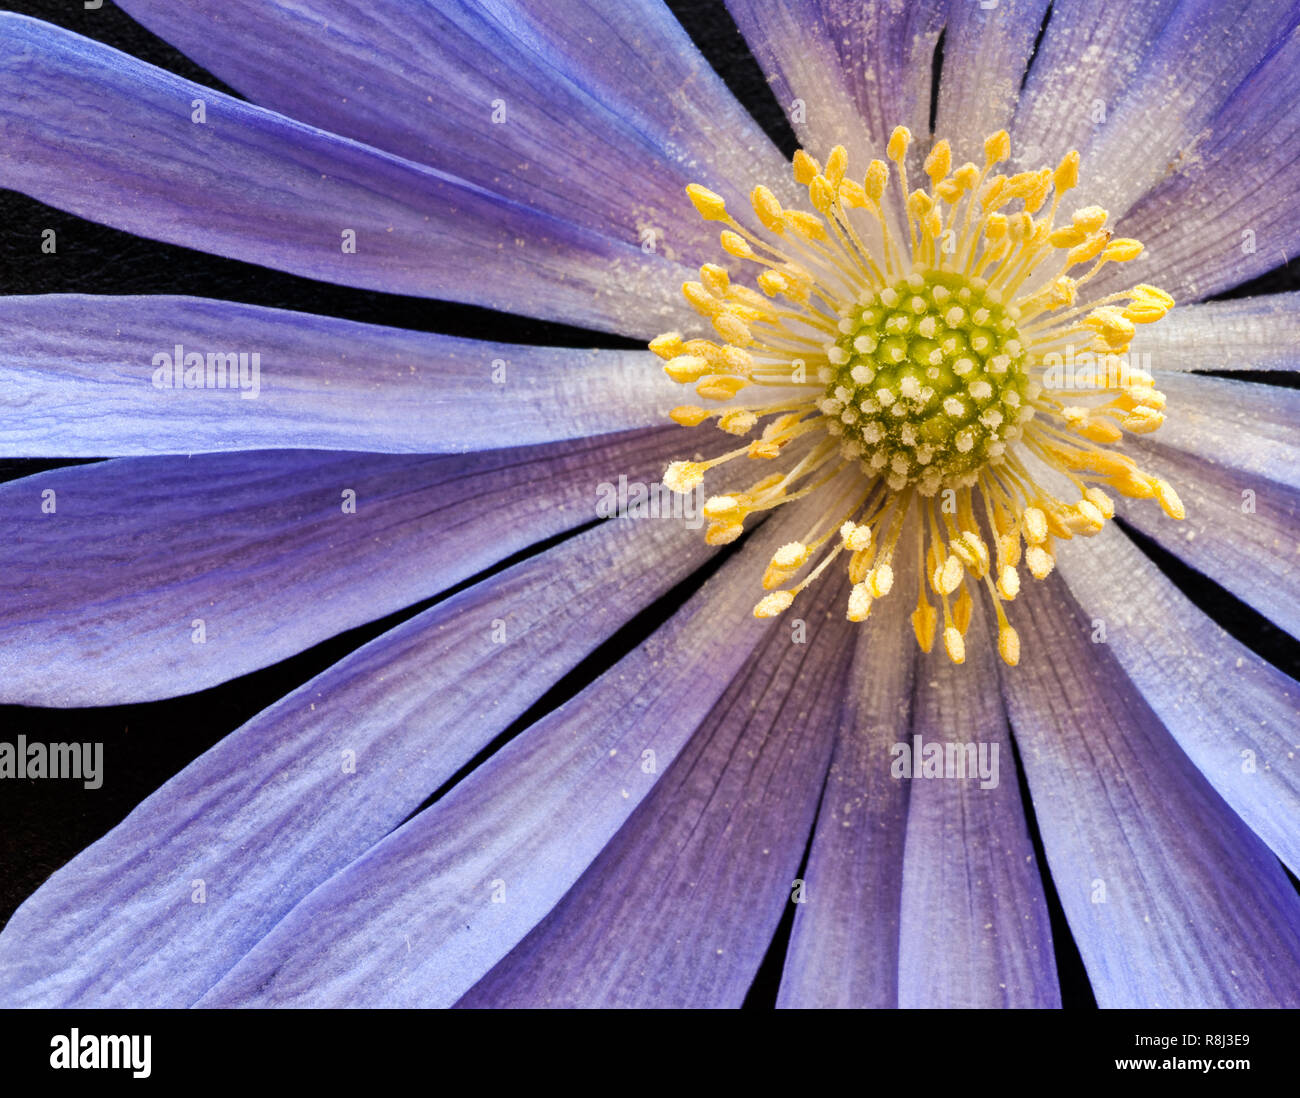 Close-up (macro) of blue star anemone (Anemone blanda) blossom. Lavender sepals encircle the reproductive parts: anthers, stamens, pistils, stigmas, f - Stock Image